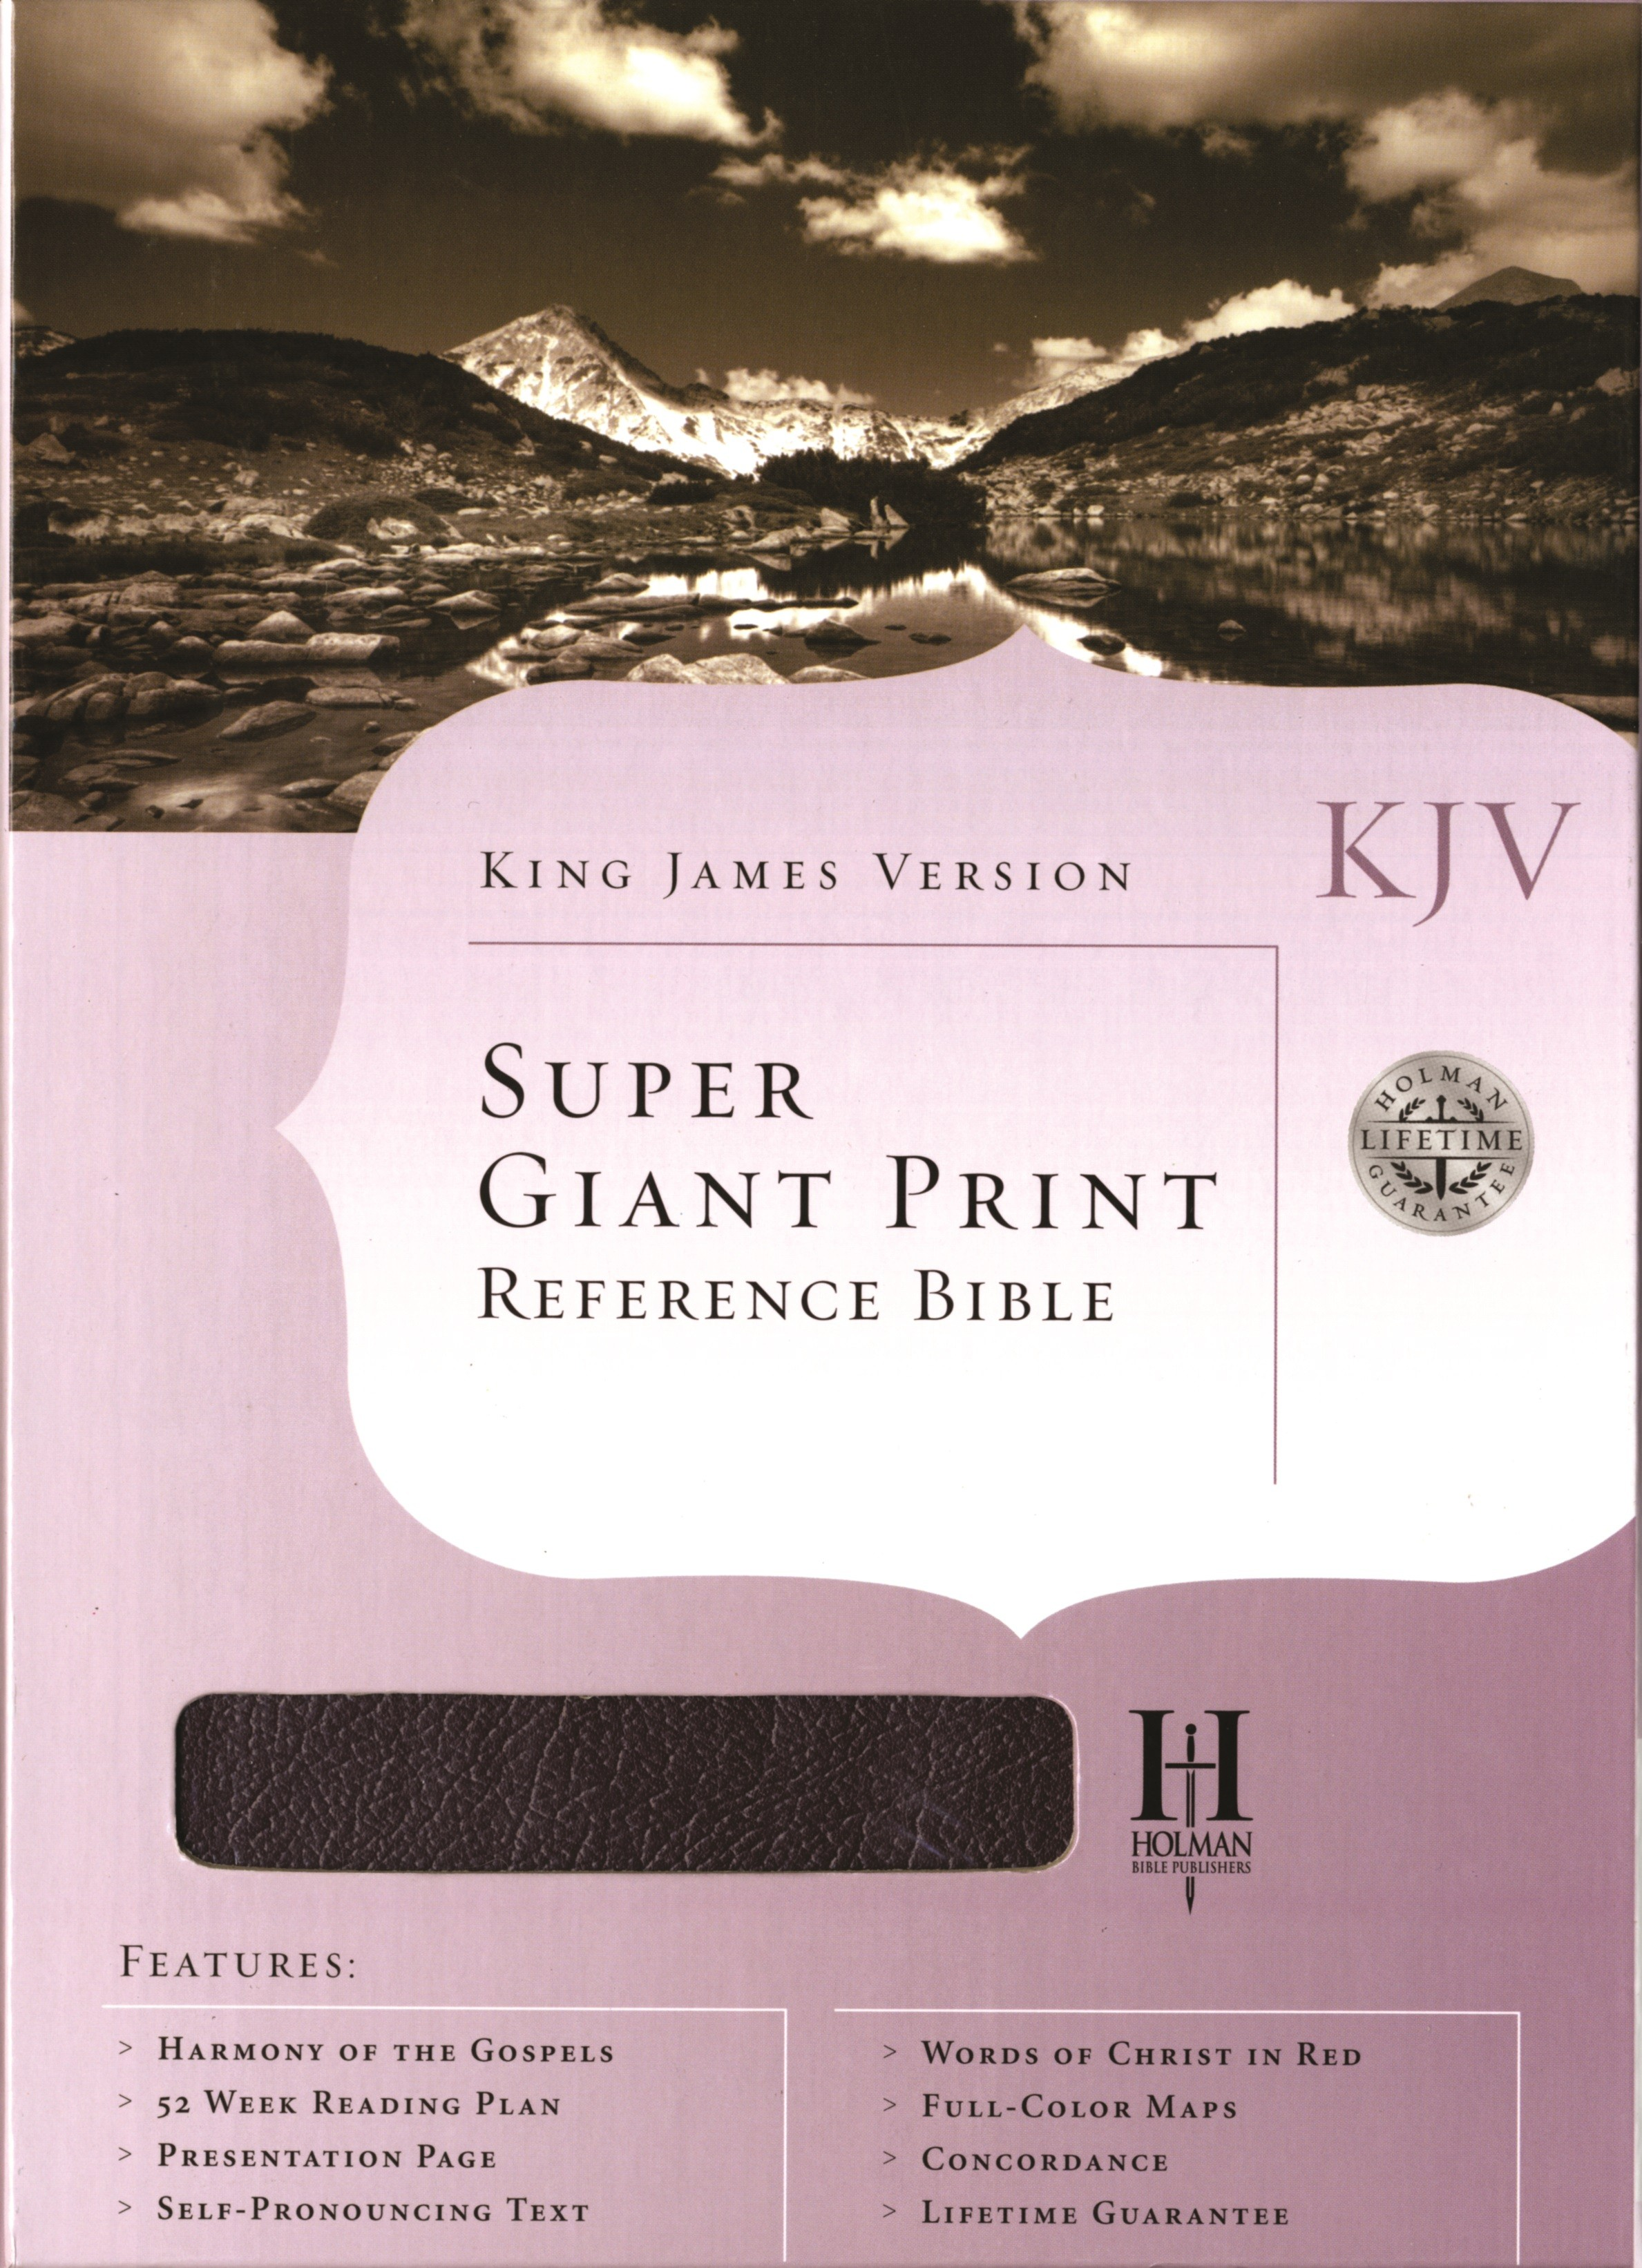 King James Version Super Giant Print Reference Bible (Black)